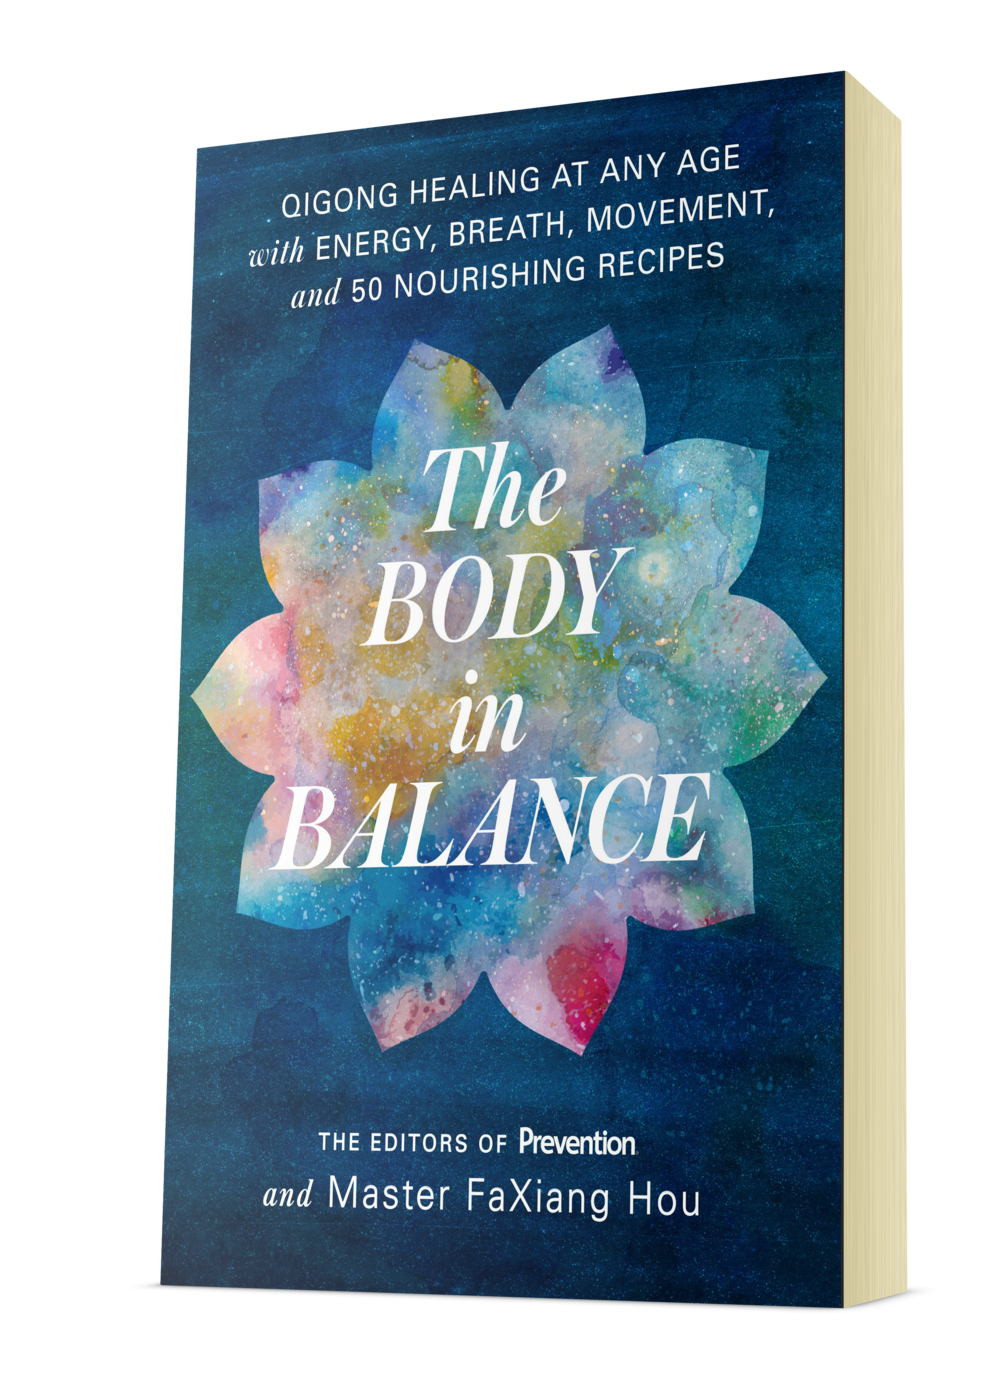 The Body in Balance - My new book is now available!